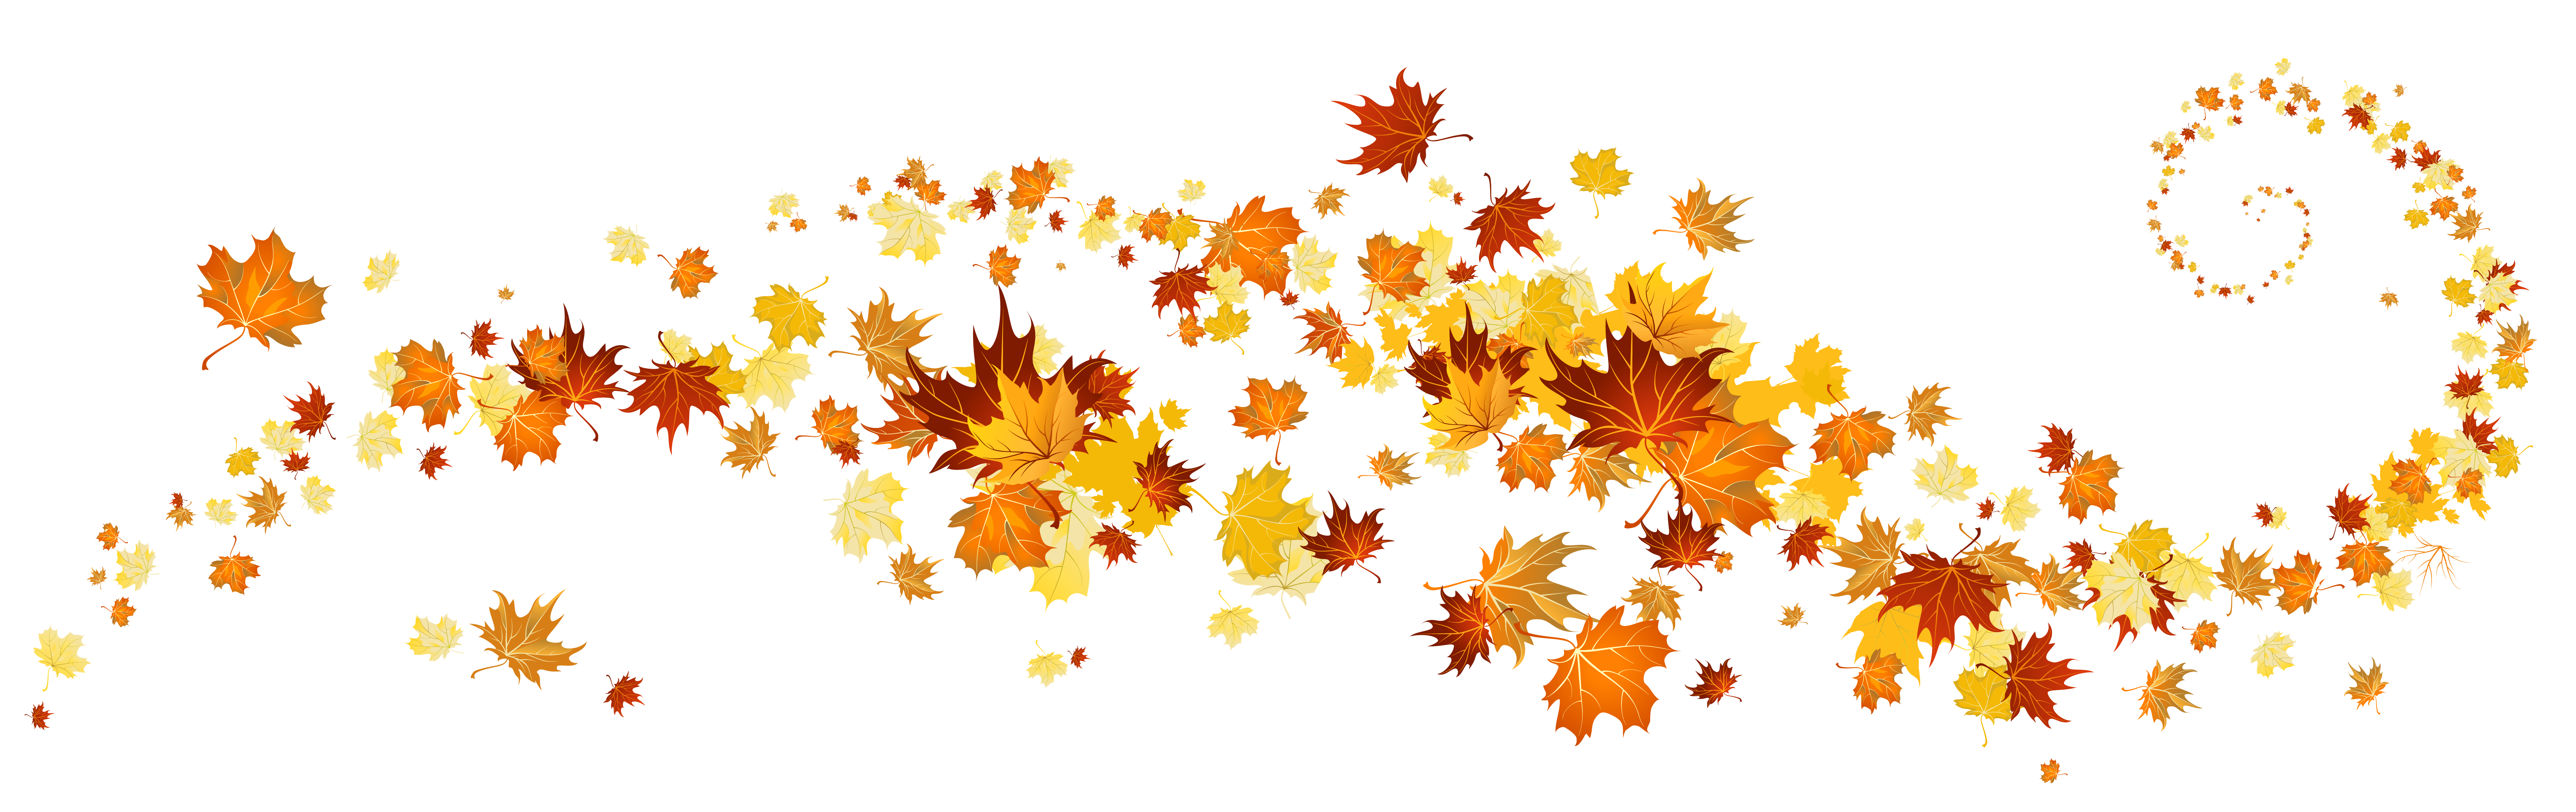 Thanksgiving leaf clipart jpg freeuse stock 28+ Collection of Thanksgiving Leaf Clipart | High quality, free ... jpg freeuse stock